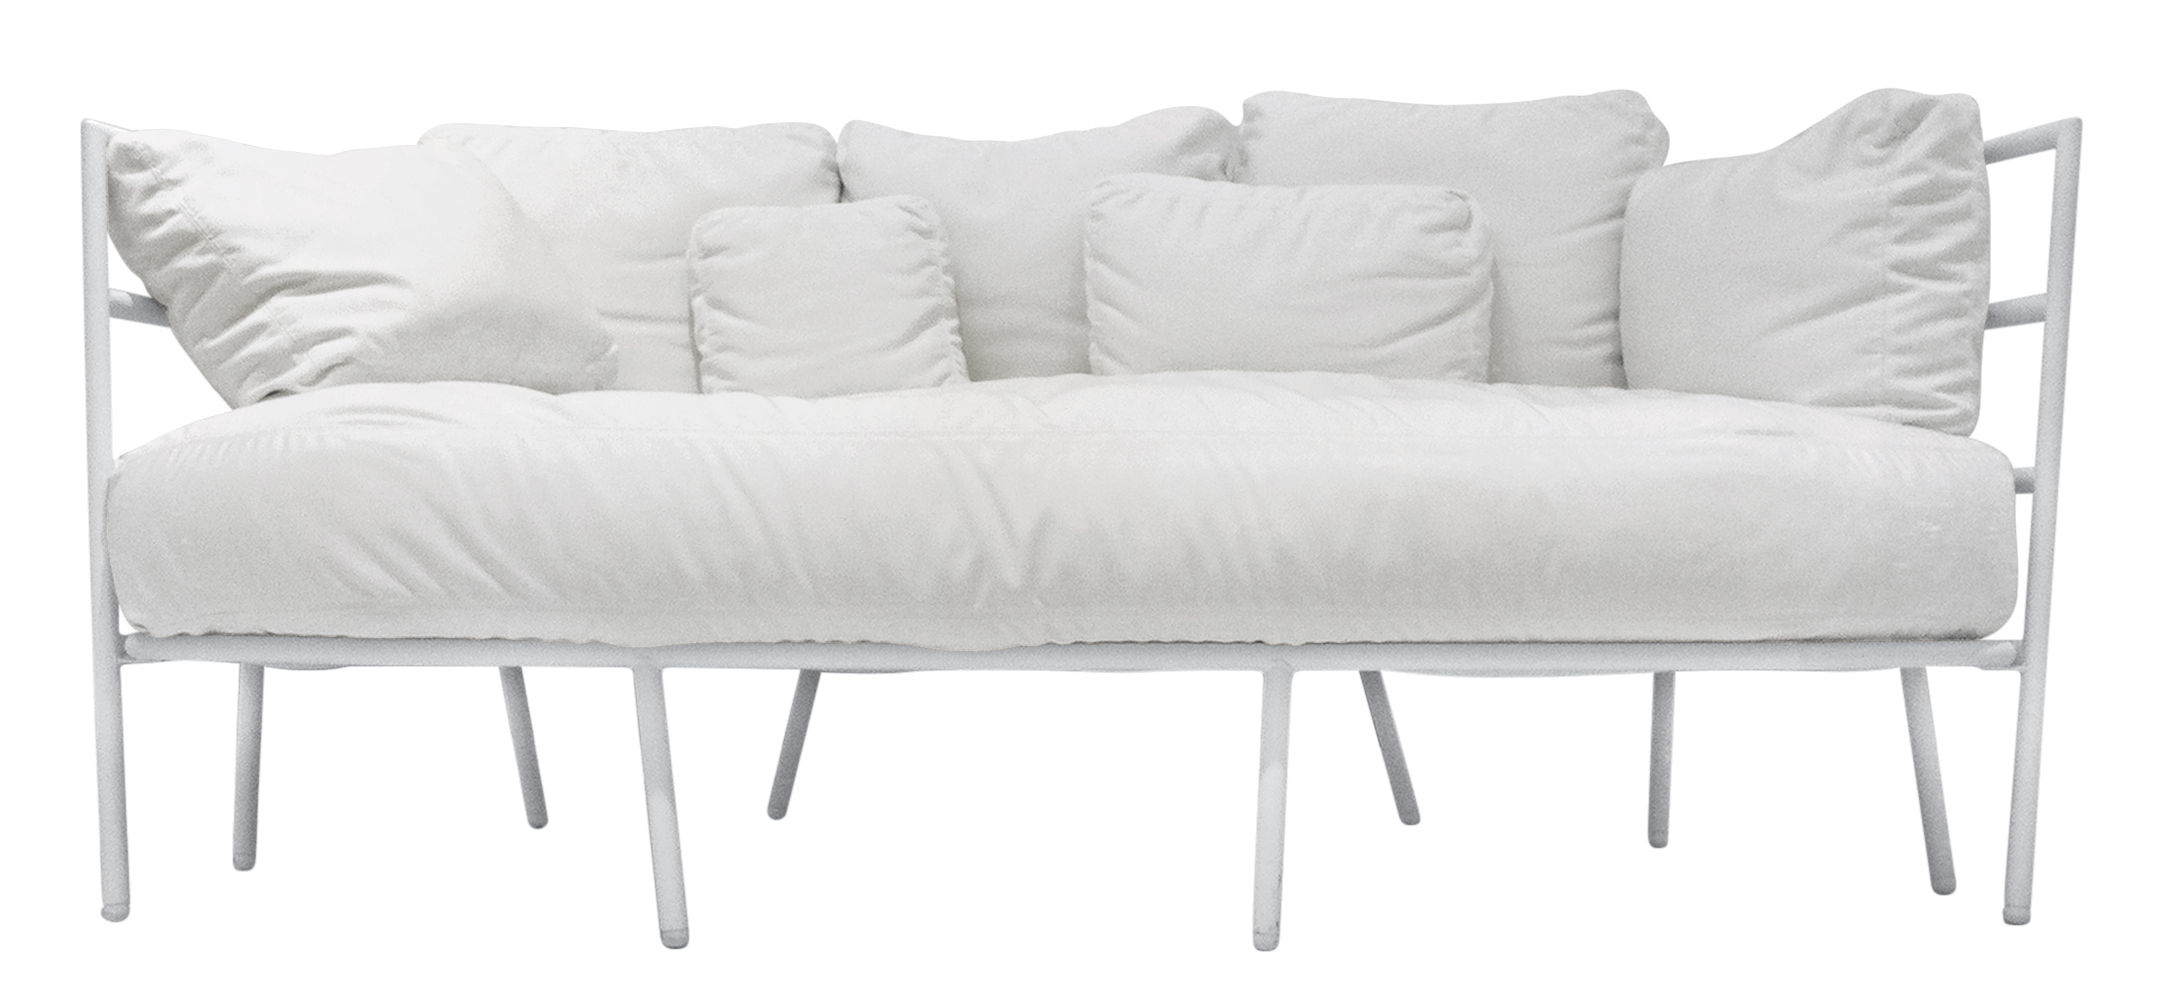 Furniture - Sofas - Dehors Straight sofa - Outdoor / 2 seaters by Alias - White structure / White cushions - Acrylic fabric, Lacquered steel